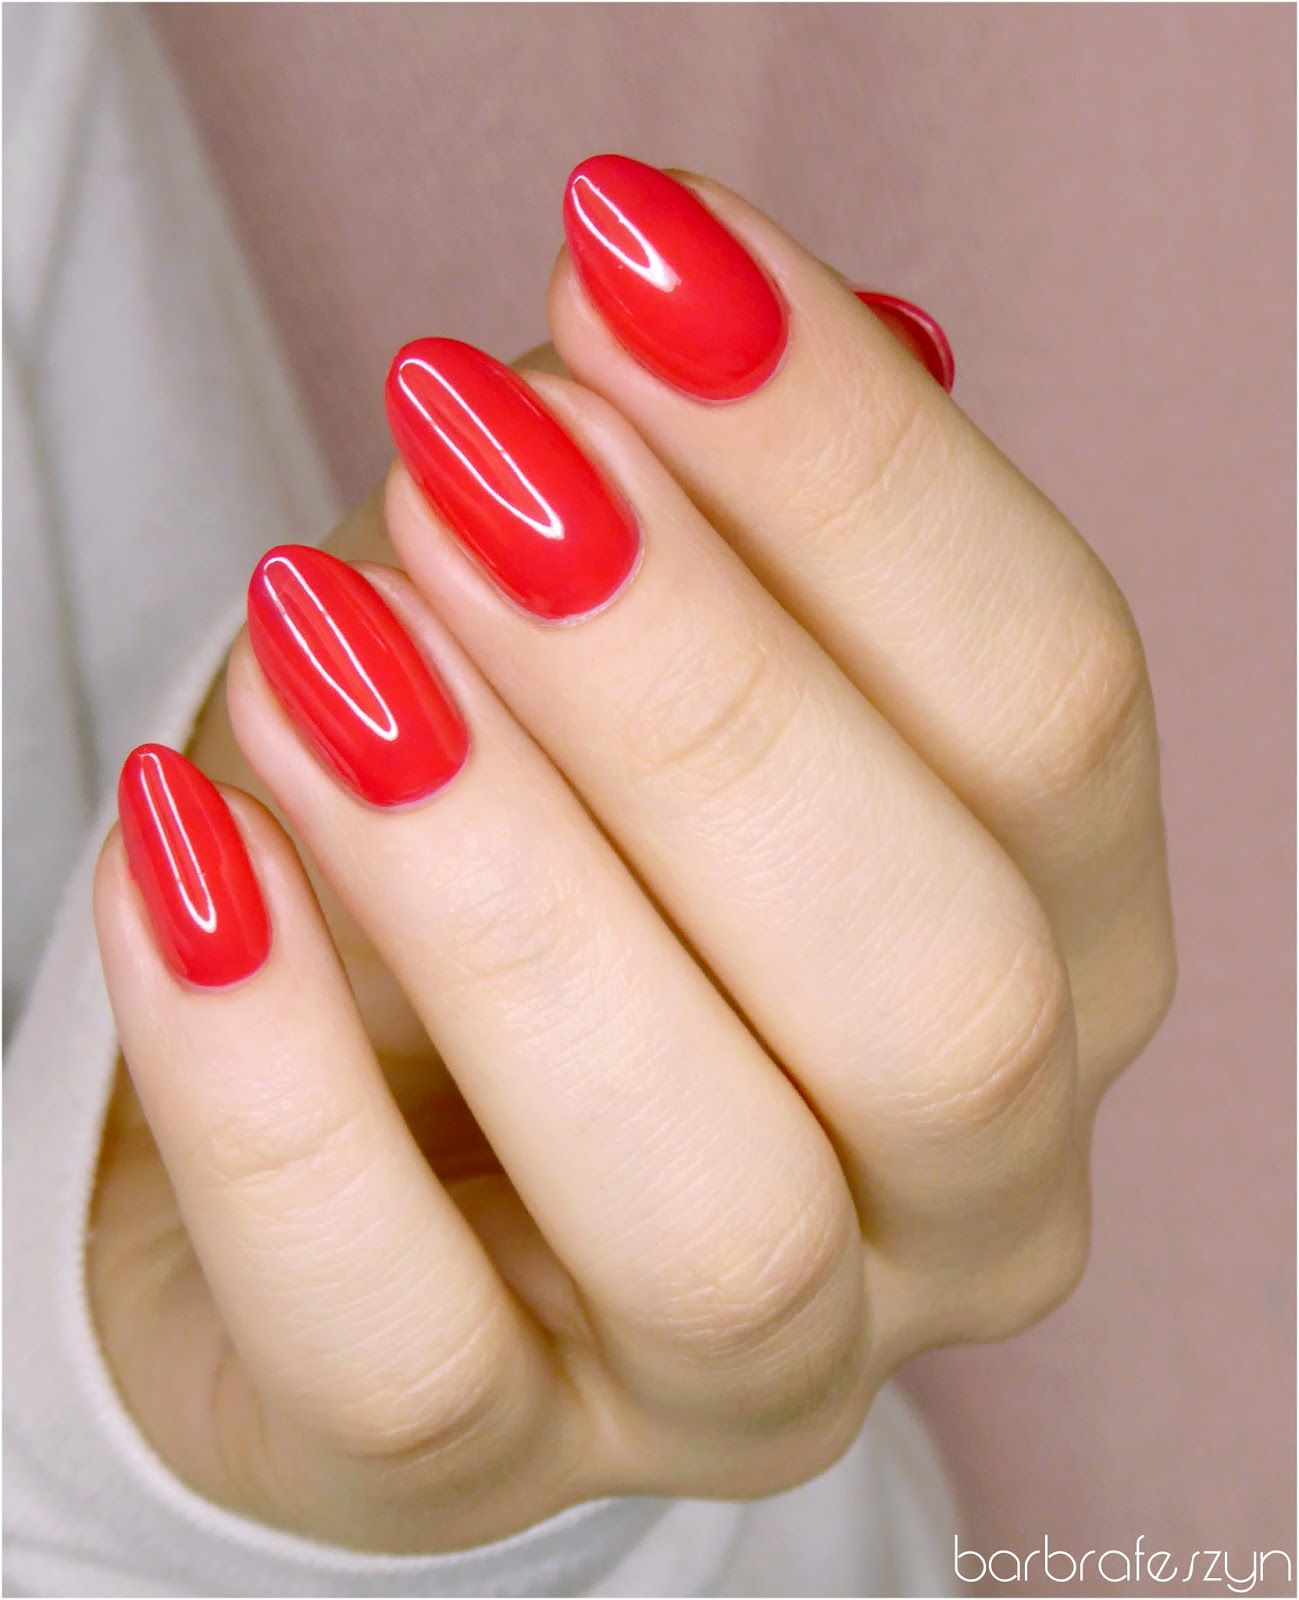 Neon red nails (unfortunately to glaring for me) : RedditLaqueristas